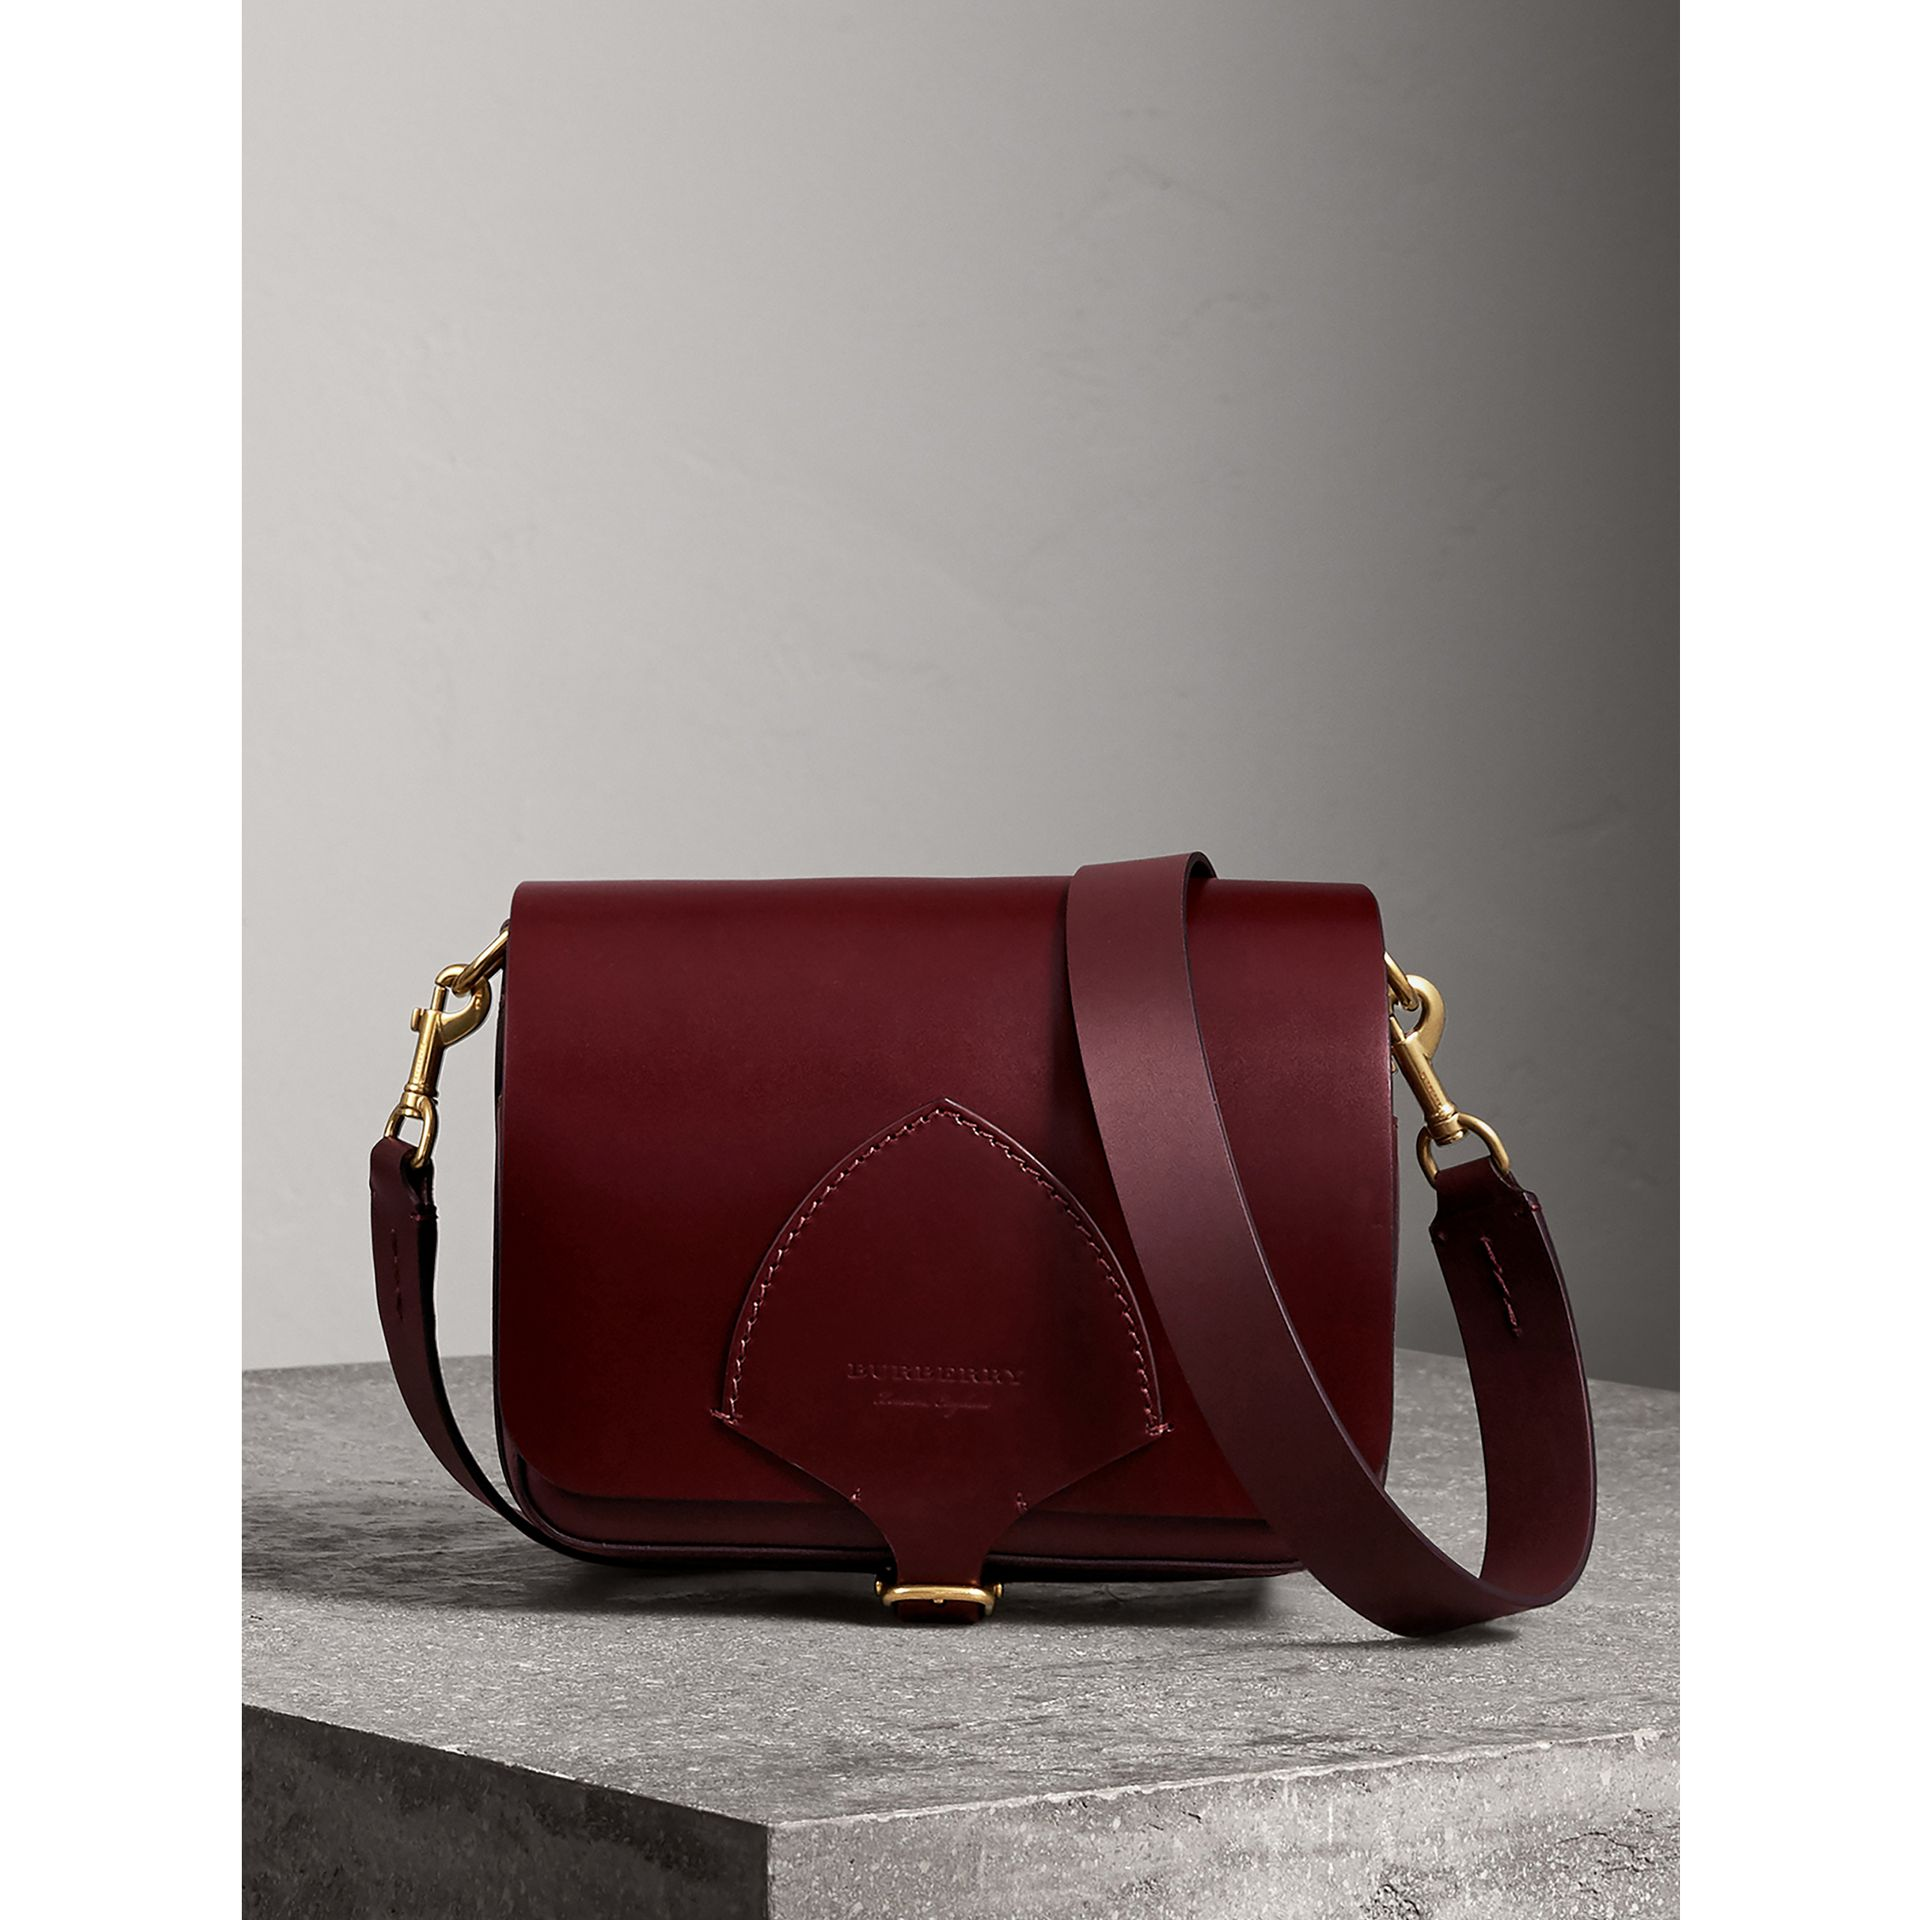 The Square Satchel in Bridle Leather in Deep Claret - Women | Burberry Australia - gallery image 1